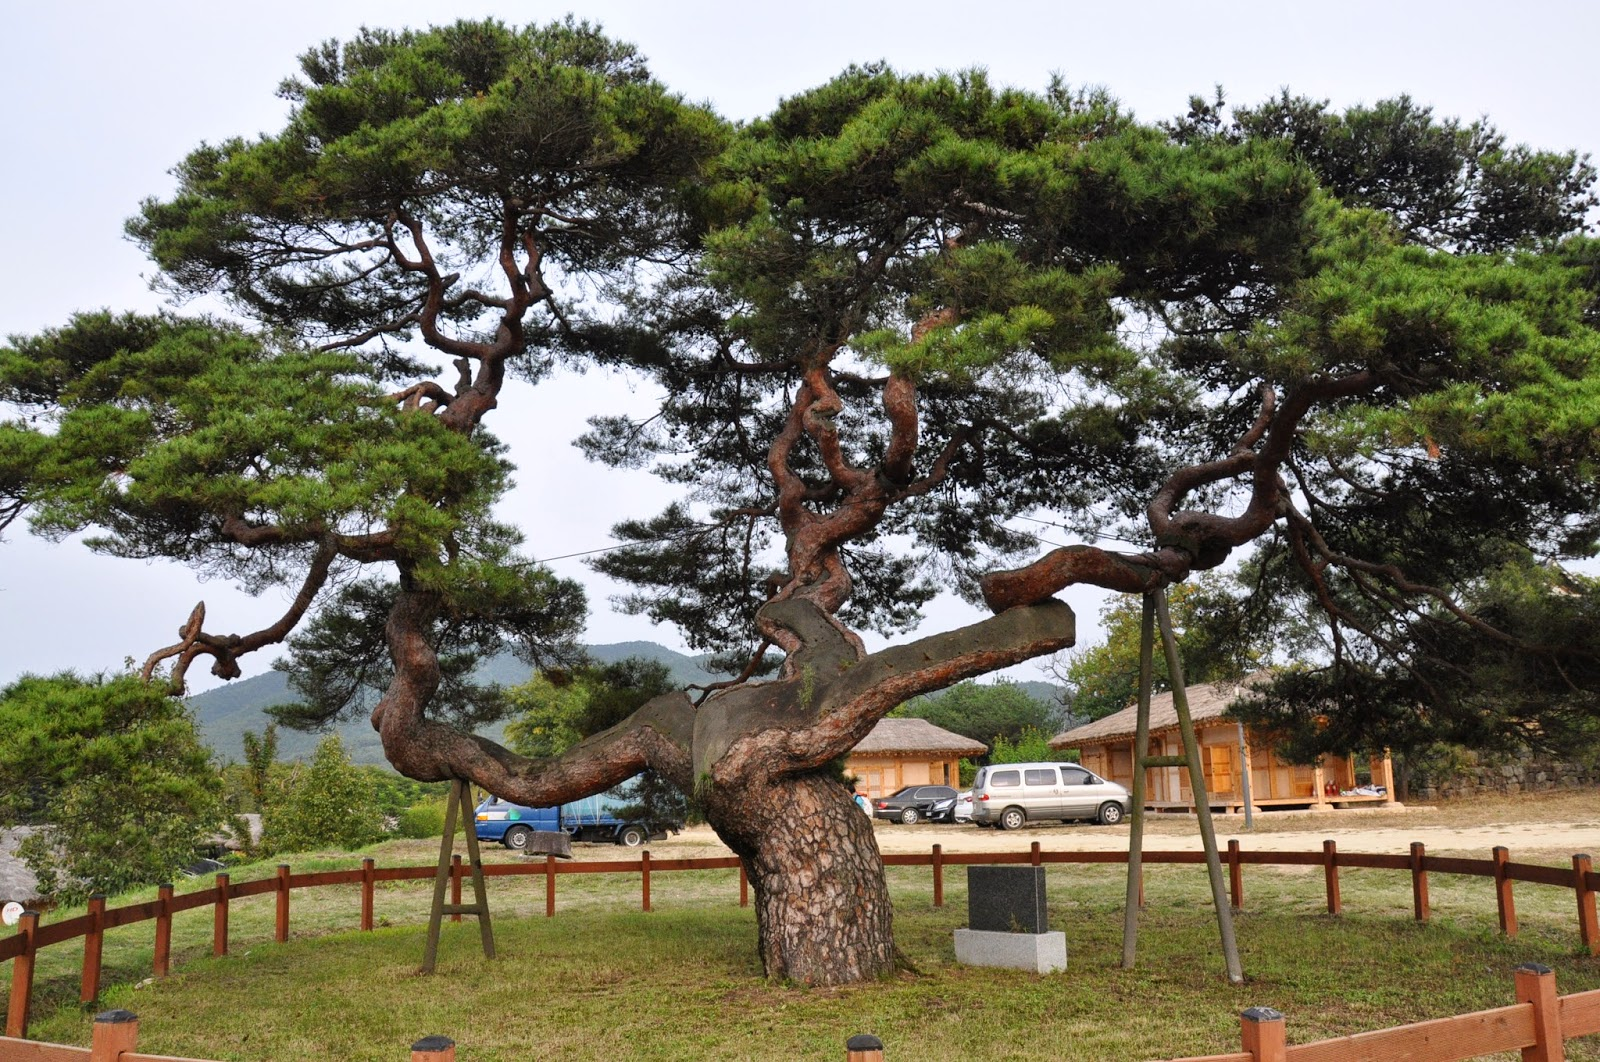 This tree is said to have a goddess living in it.